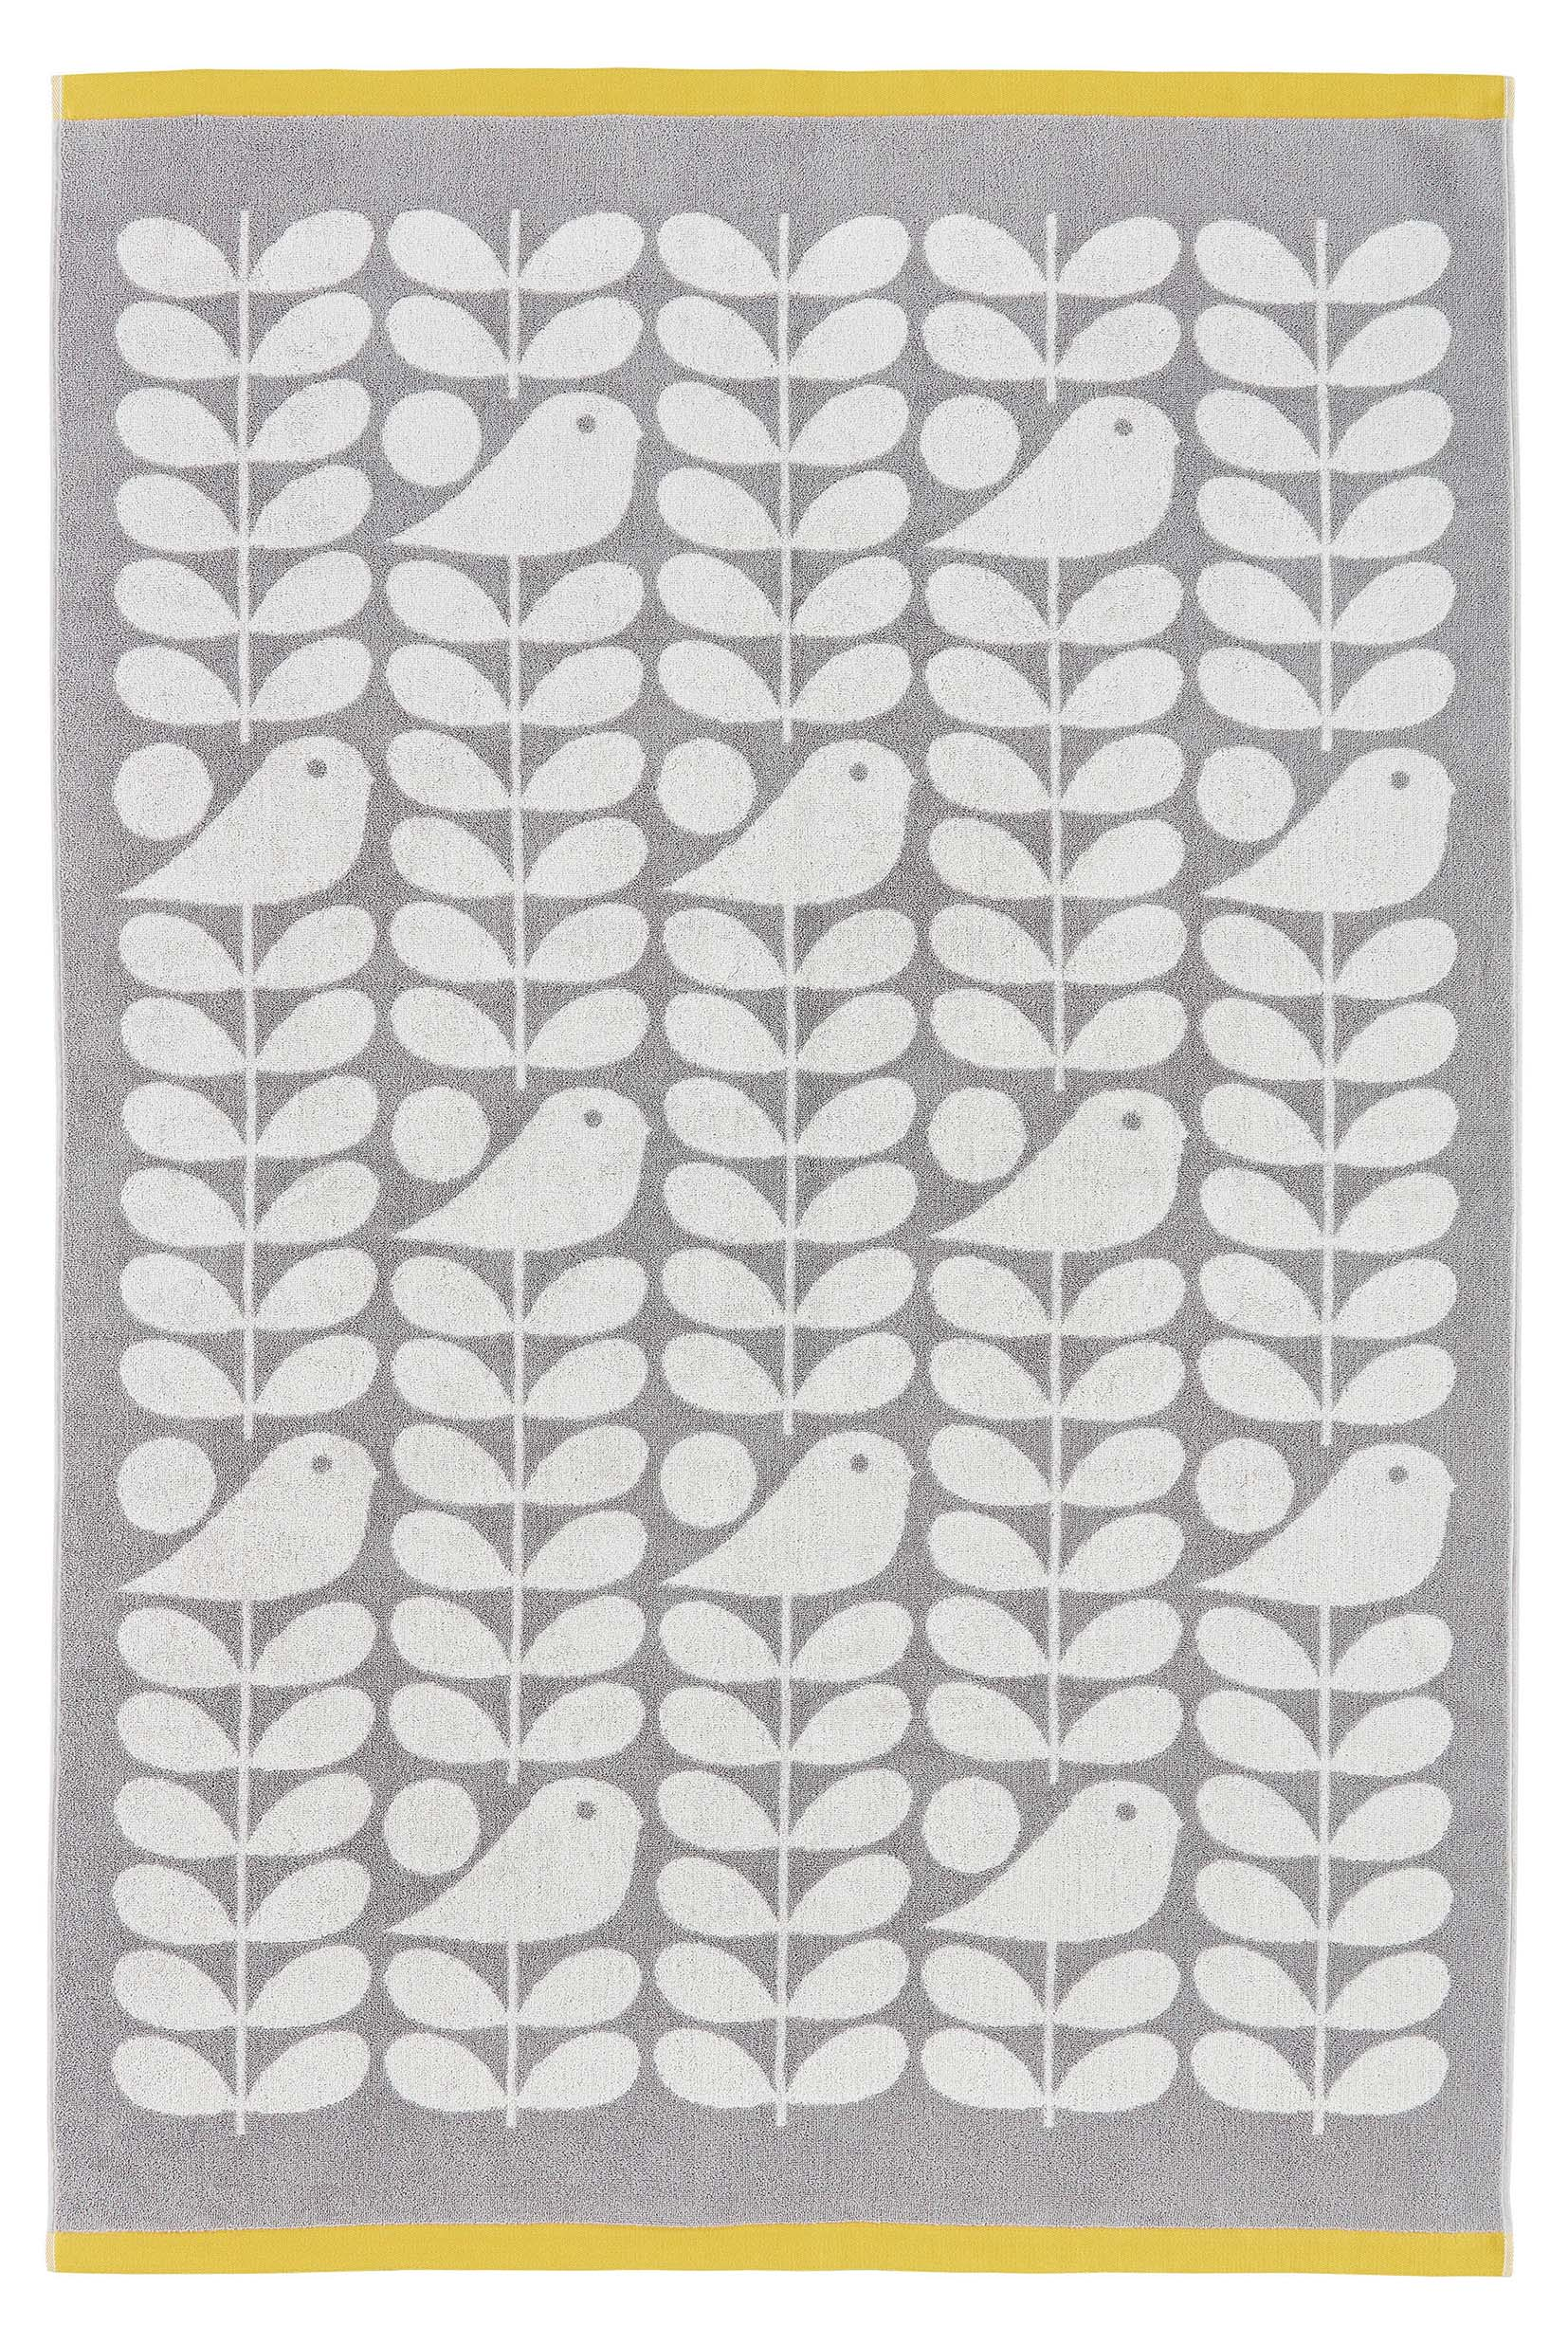 Early Bird Bath Sheet - BouChic